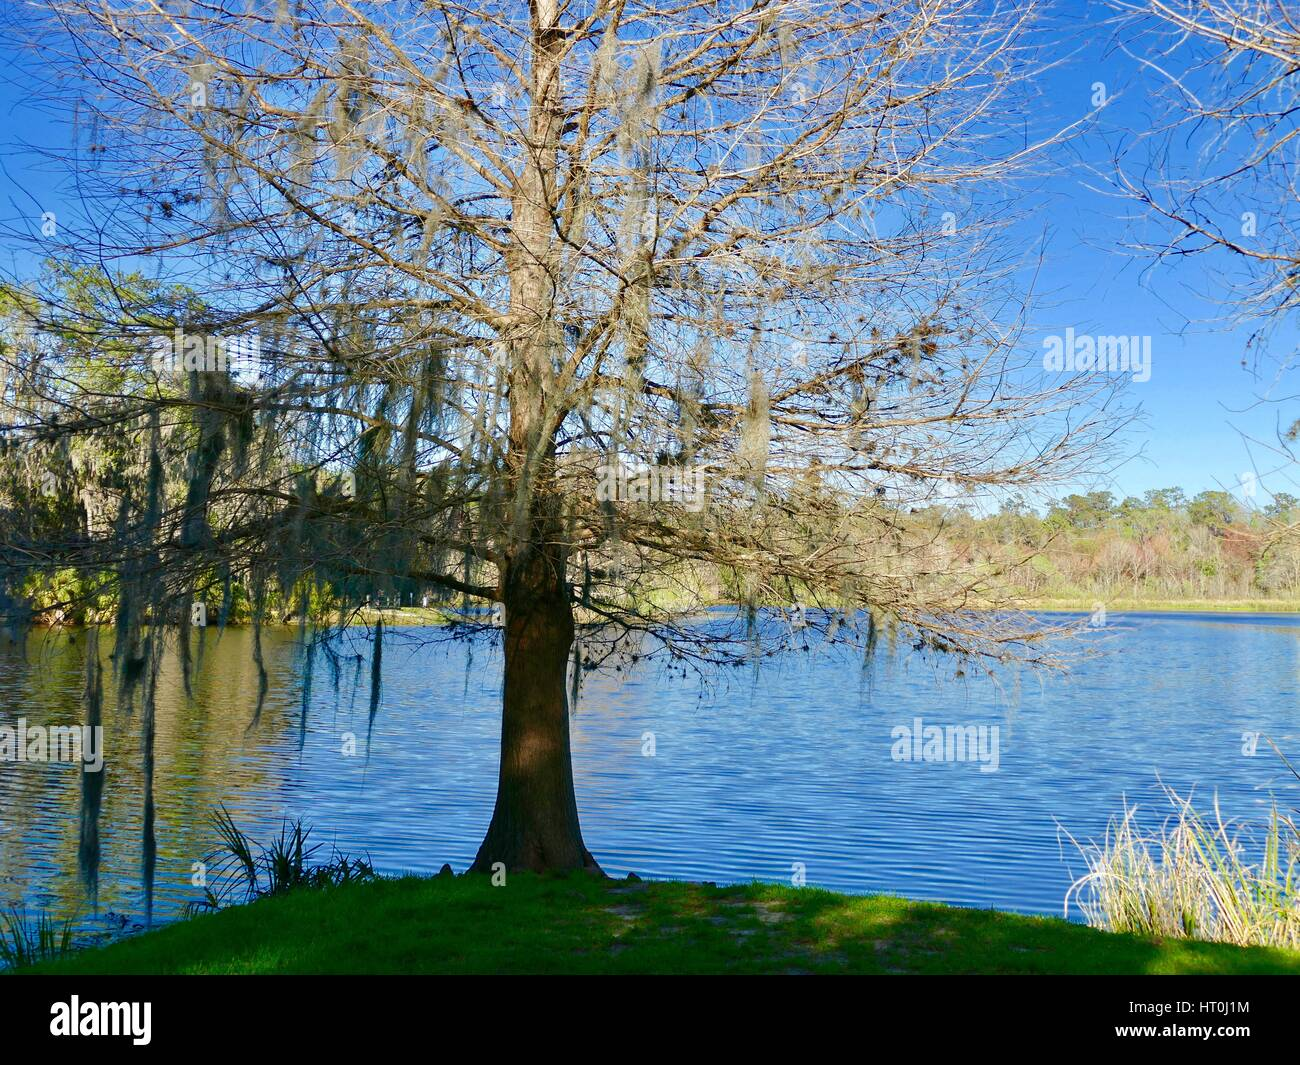 Bare cypress tree on the edge of Lake Alice, University of Florida campus, Gainesville, Florida, USA. - Stock Image